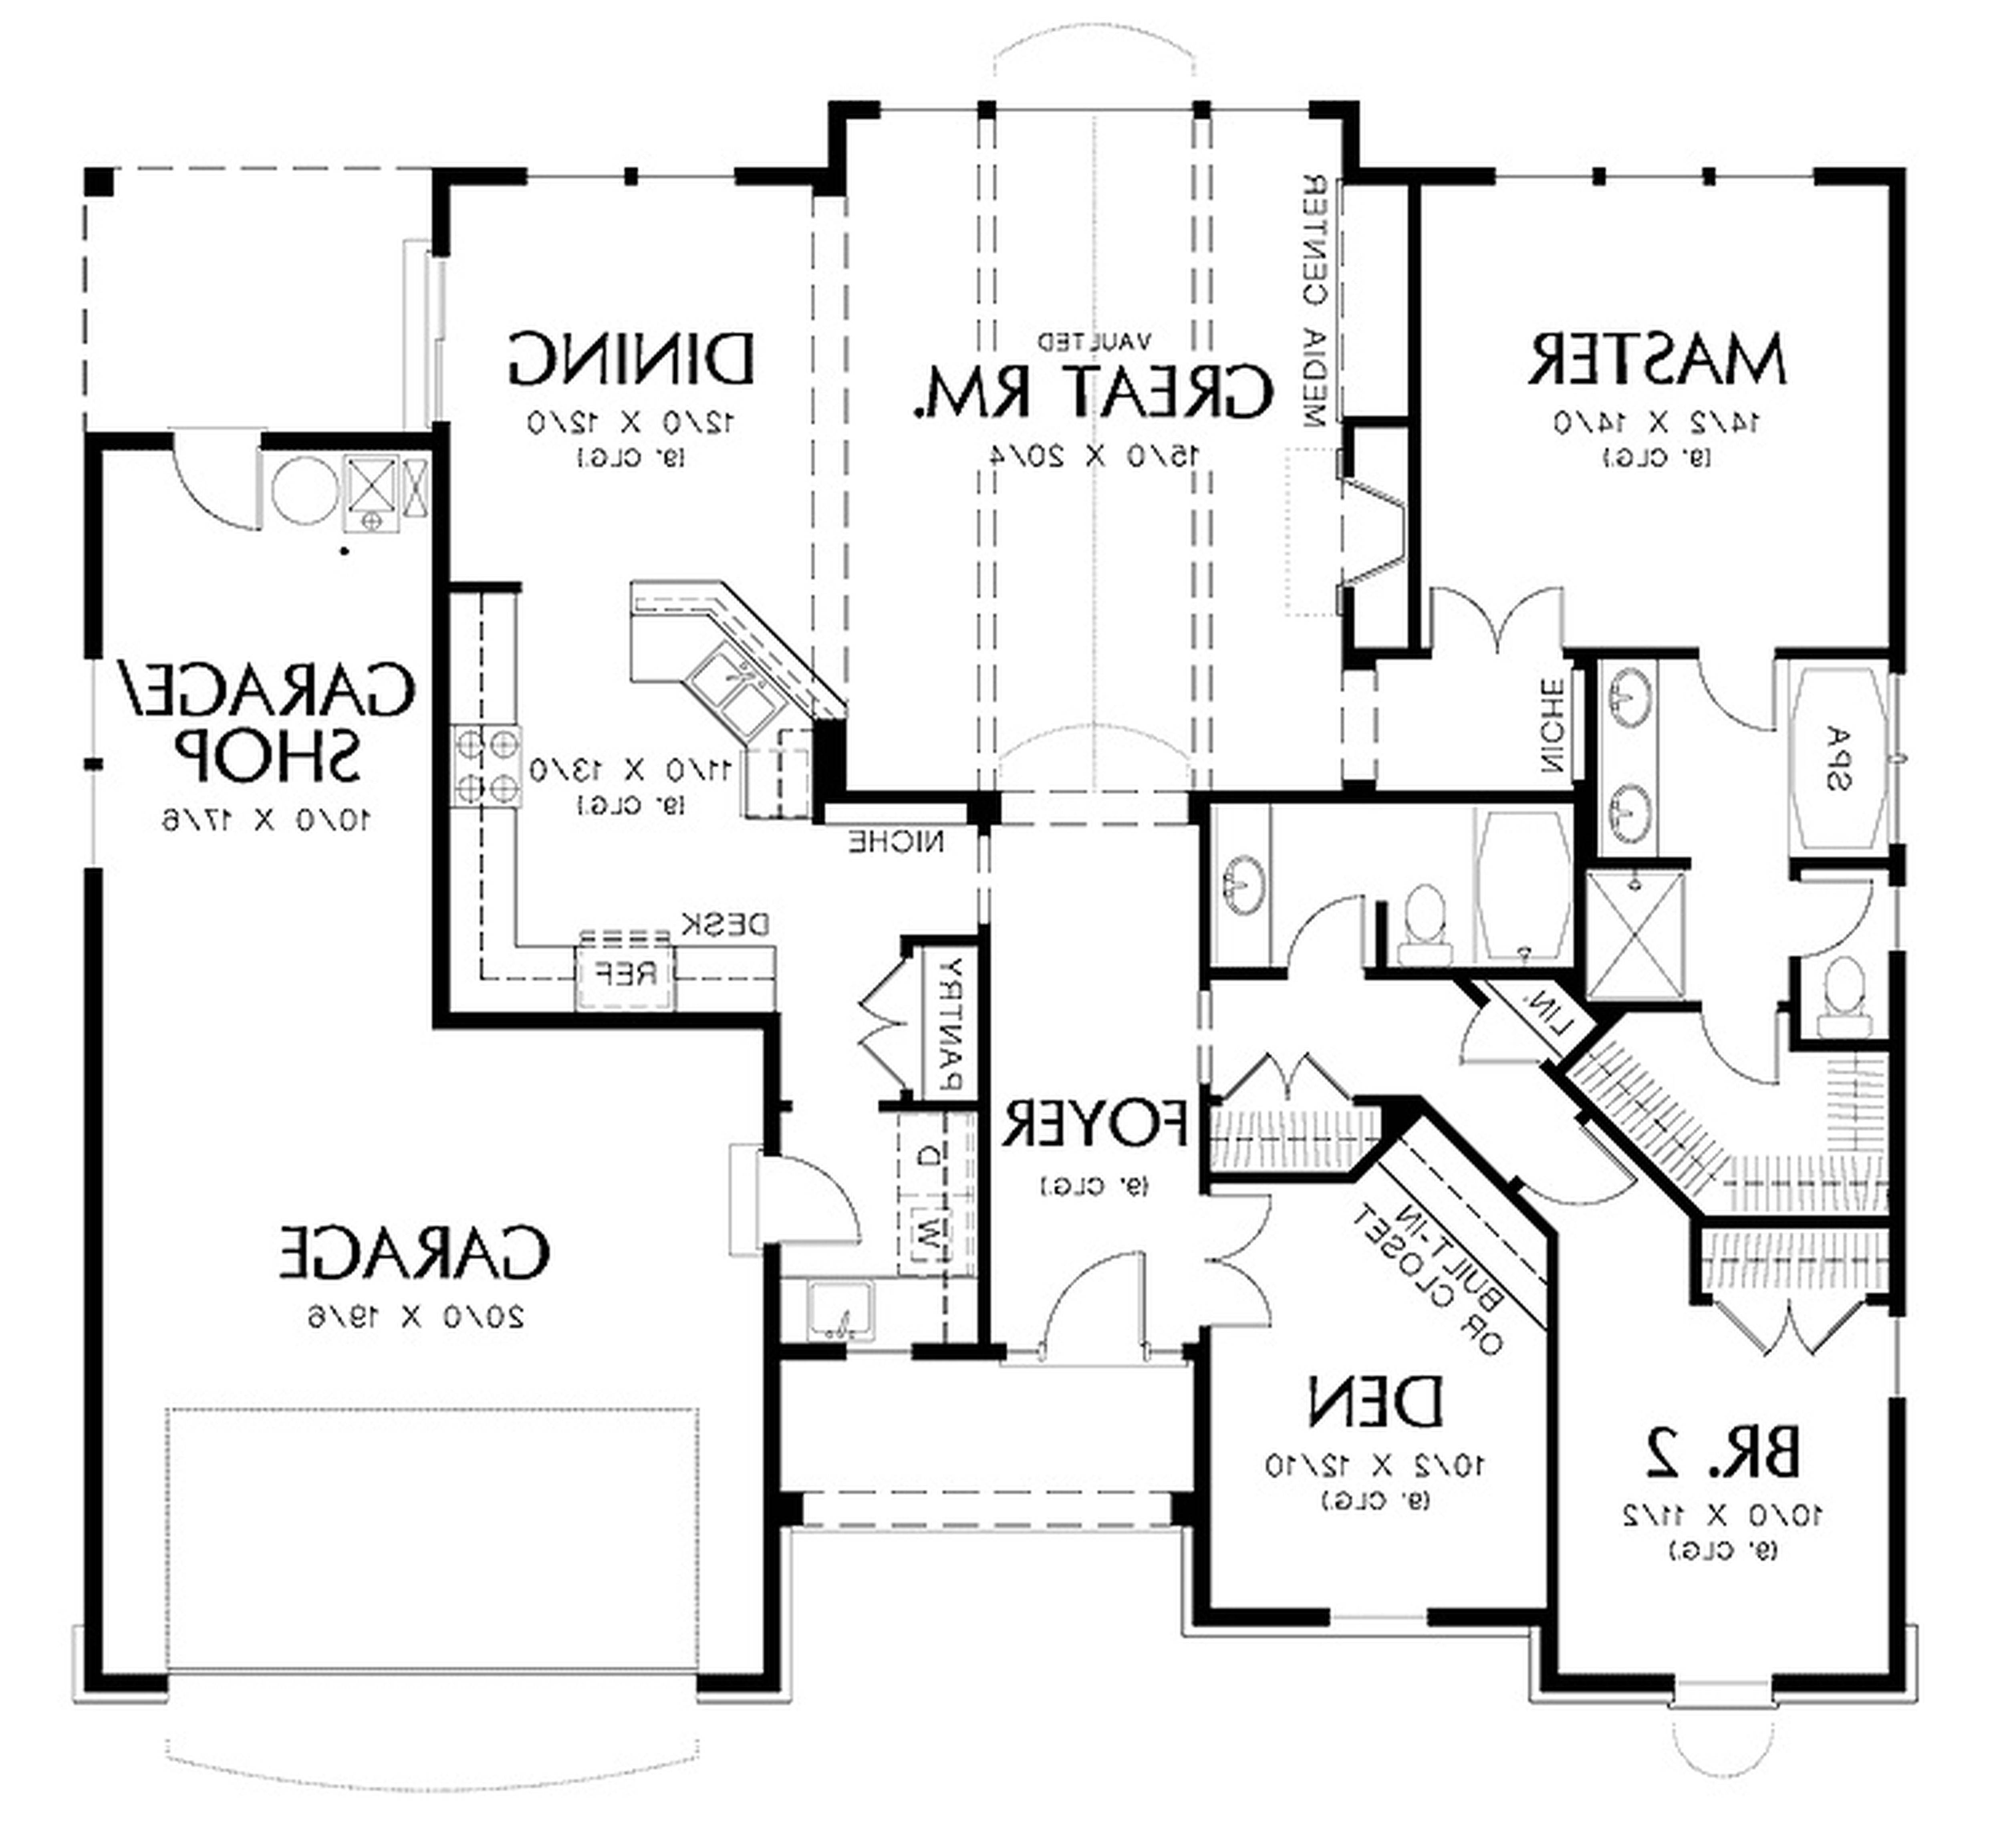 House Diagram Maker Guide Refrence